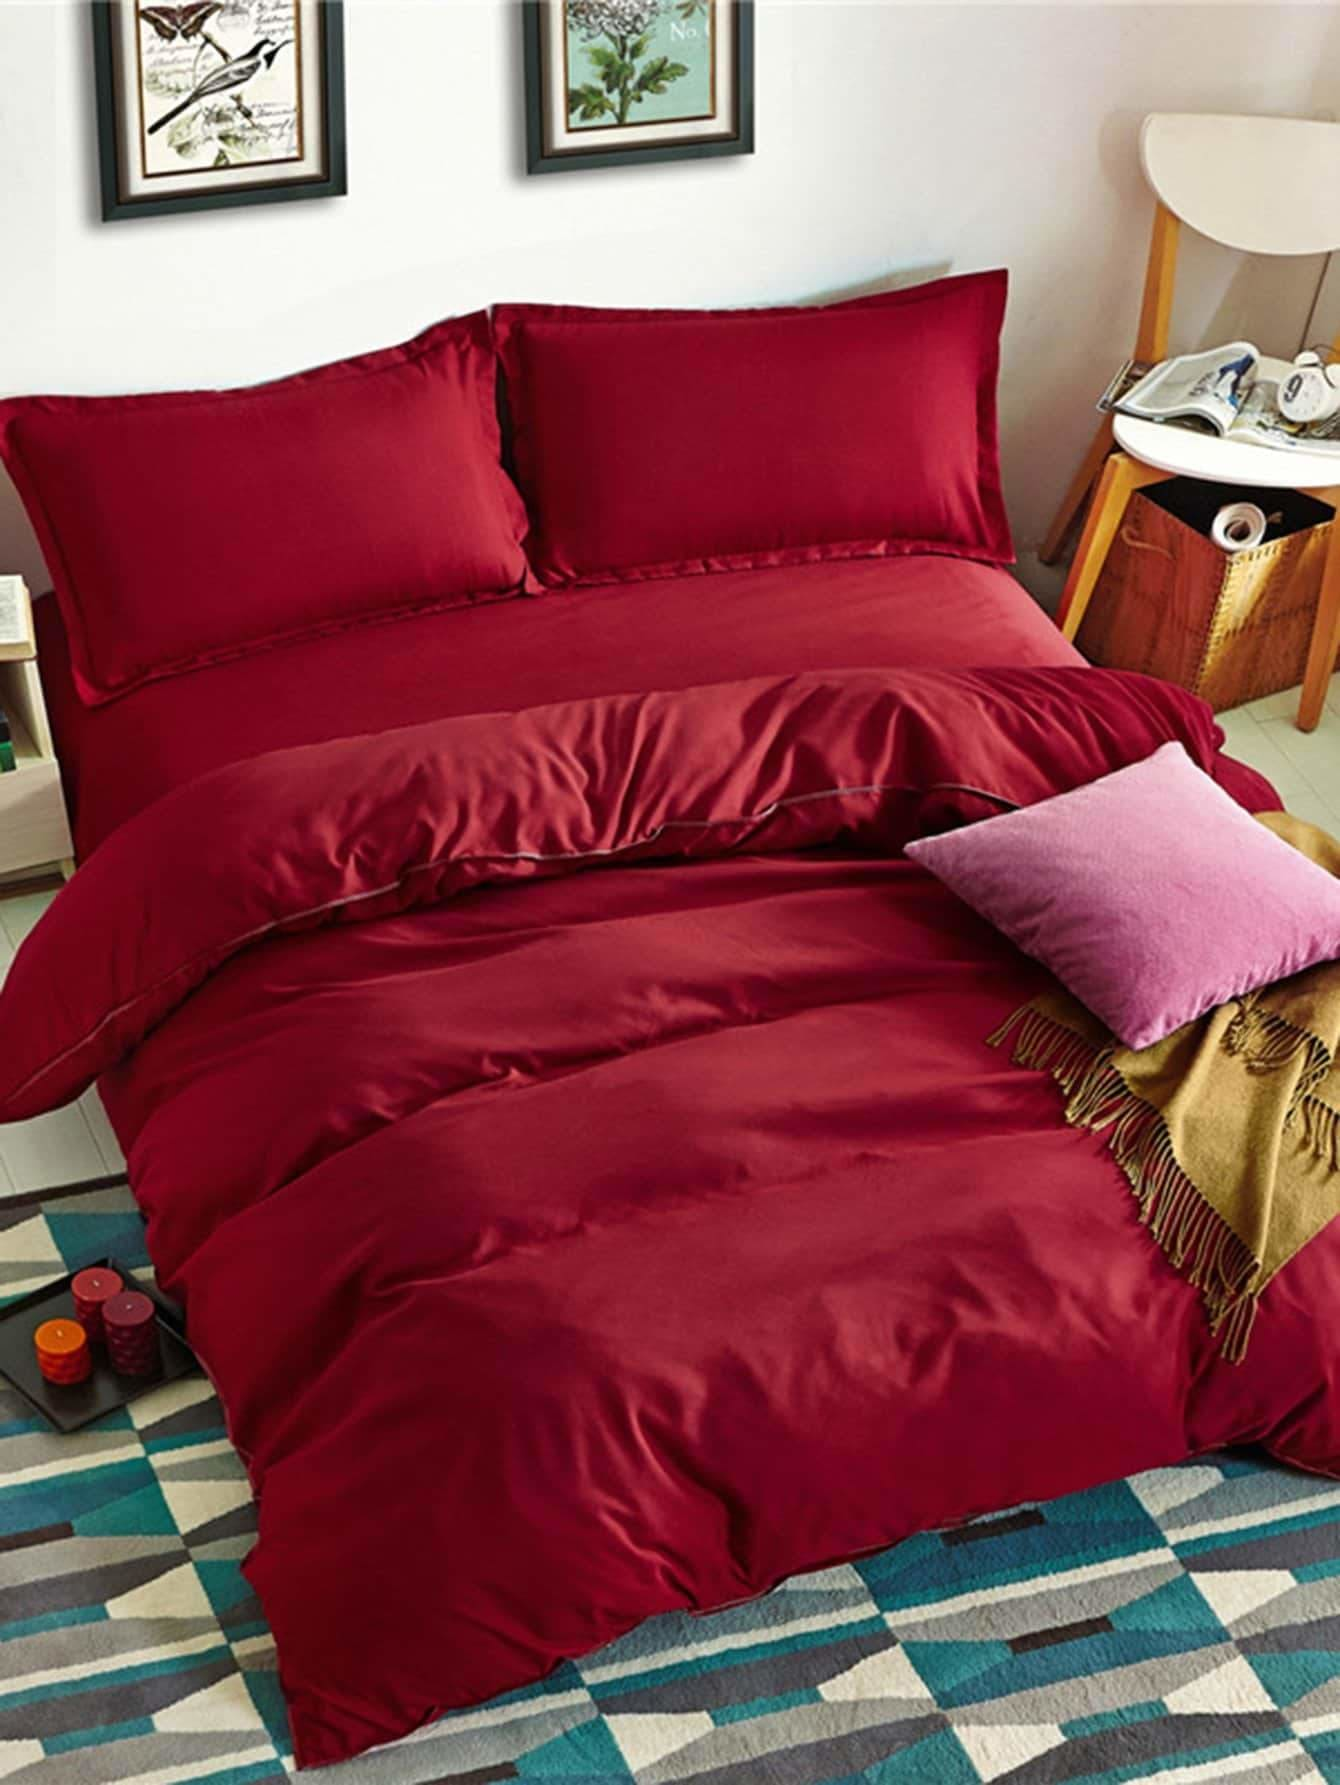 Solid Color Duvet Cover Set - Bedding Sets